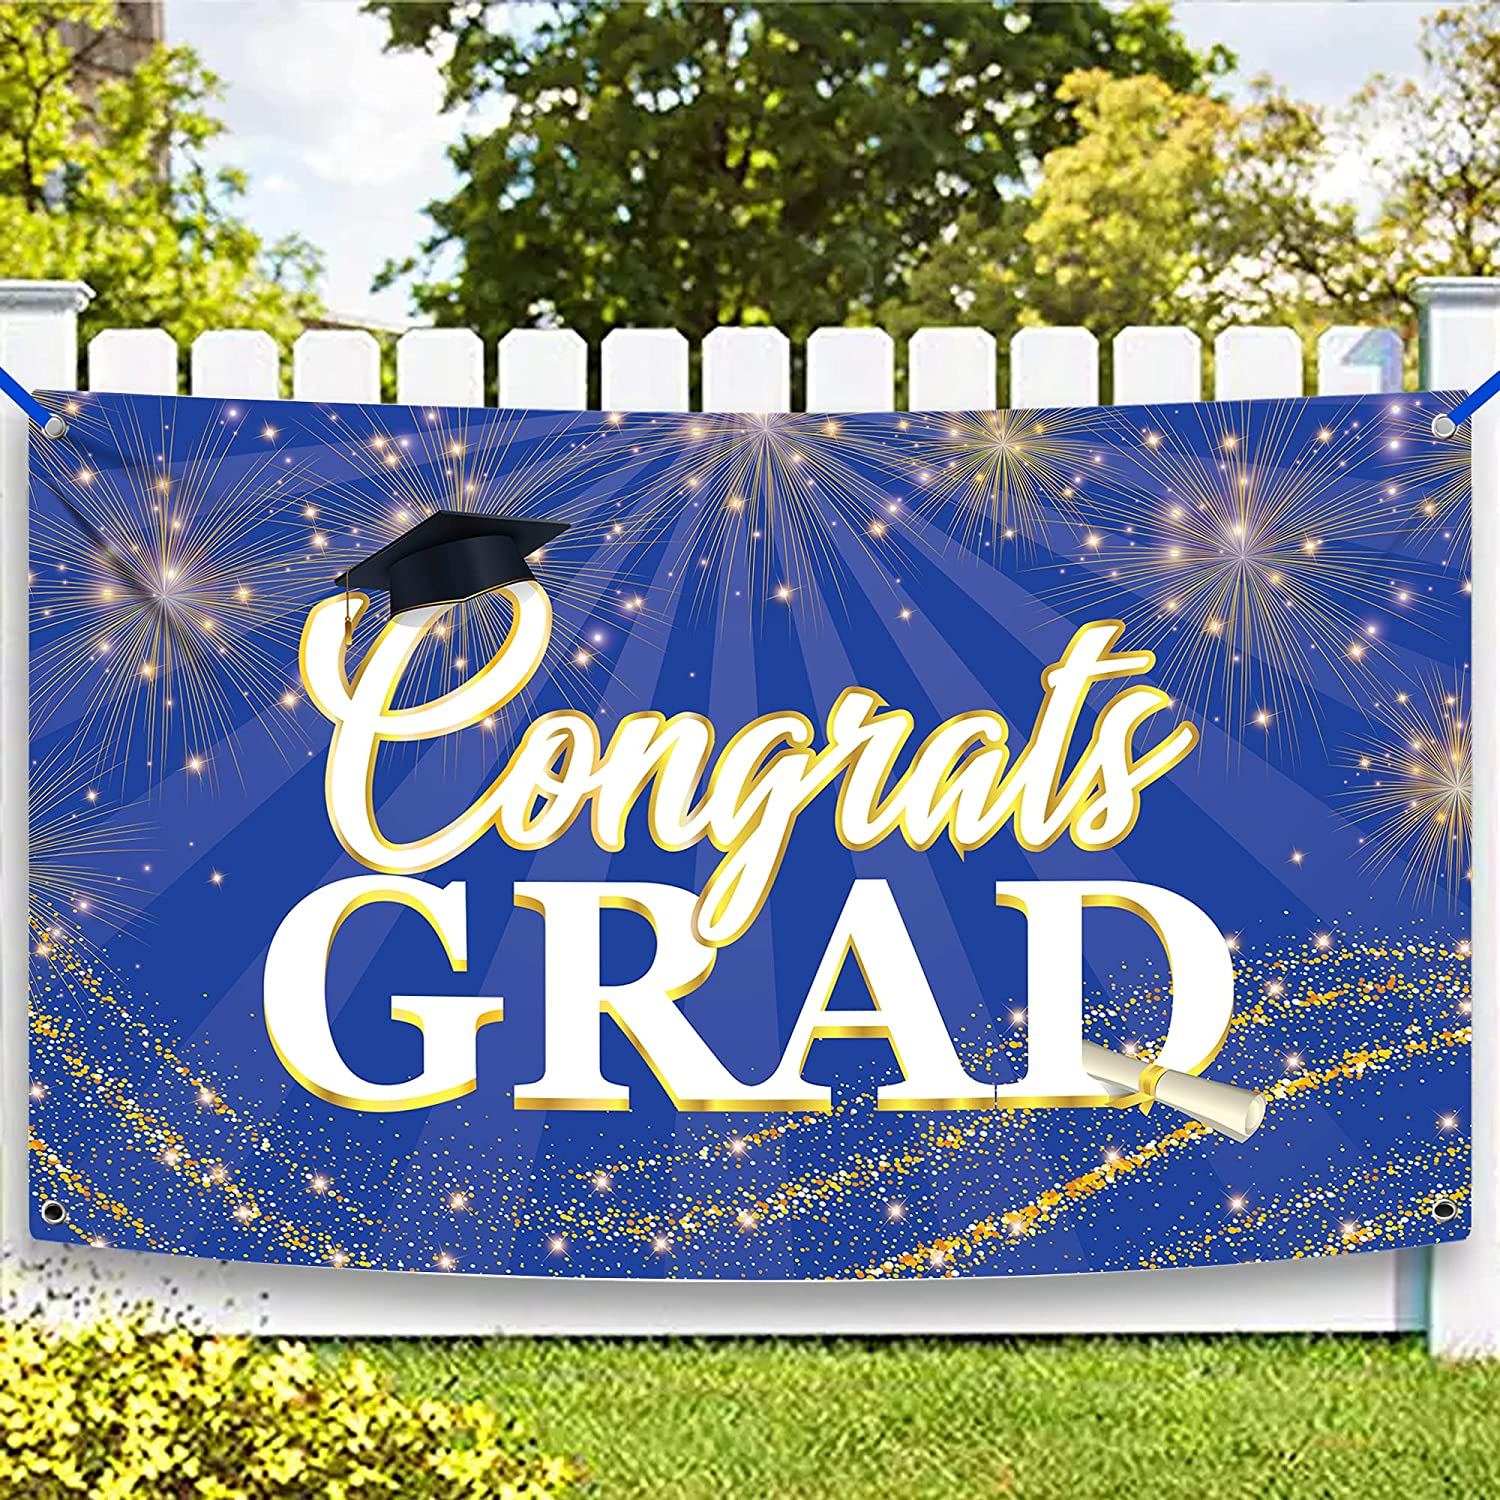 XtraLarge Congrats Grad Banner 2021 - 72x44 Inch | Graduation Banner 2021 Blue and White | Blue and Gold Graduation Decorations 2021 | Congratulations Banner Graduation Decor for Class of 2021 Party